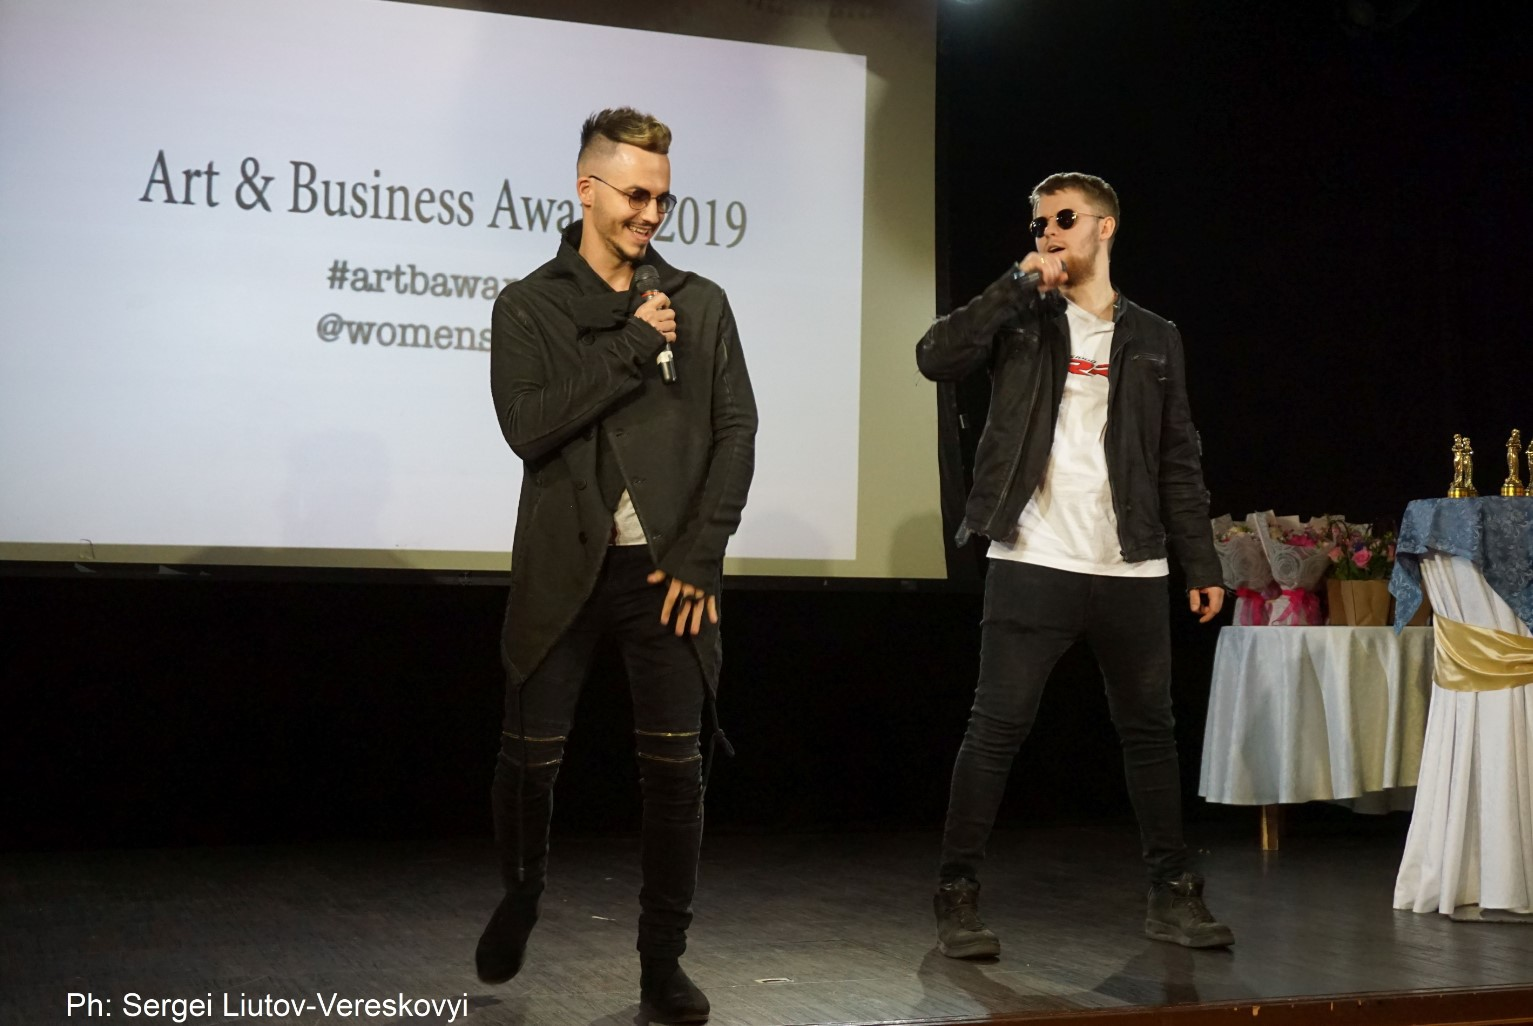 frieds-art-business-awards-2019-womens-time